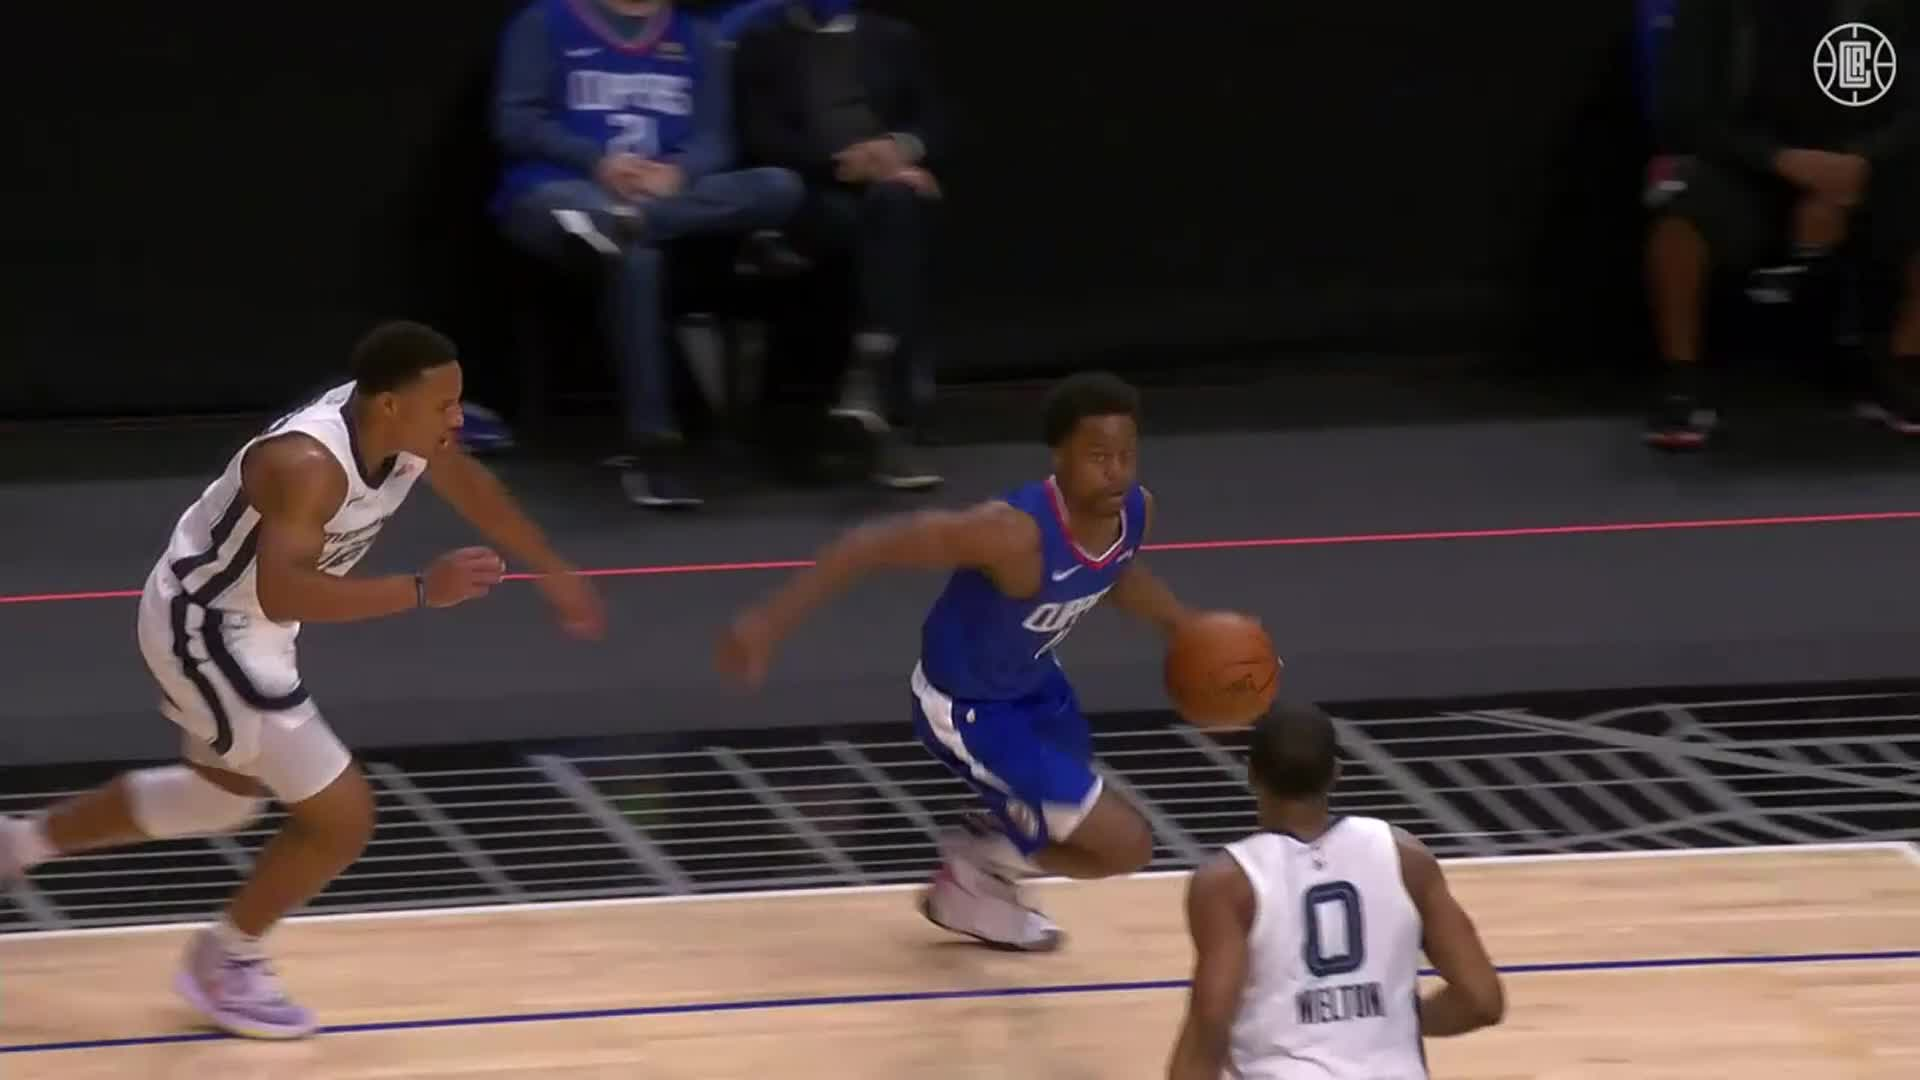 LA Clippers Sign Yogi Ferrell To Multi-Year Deal